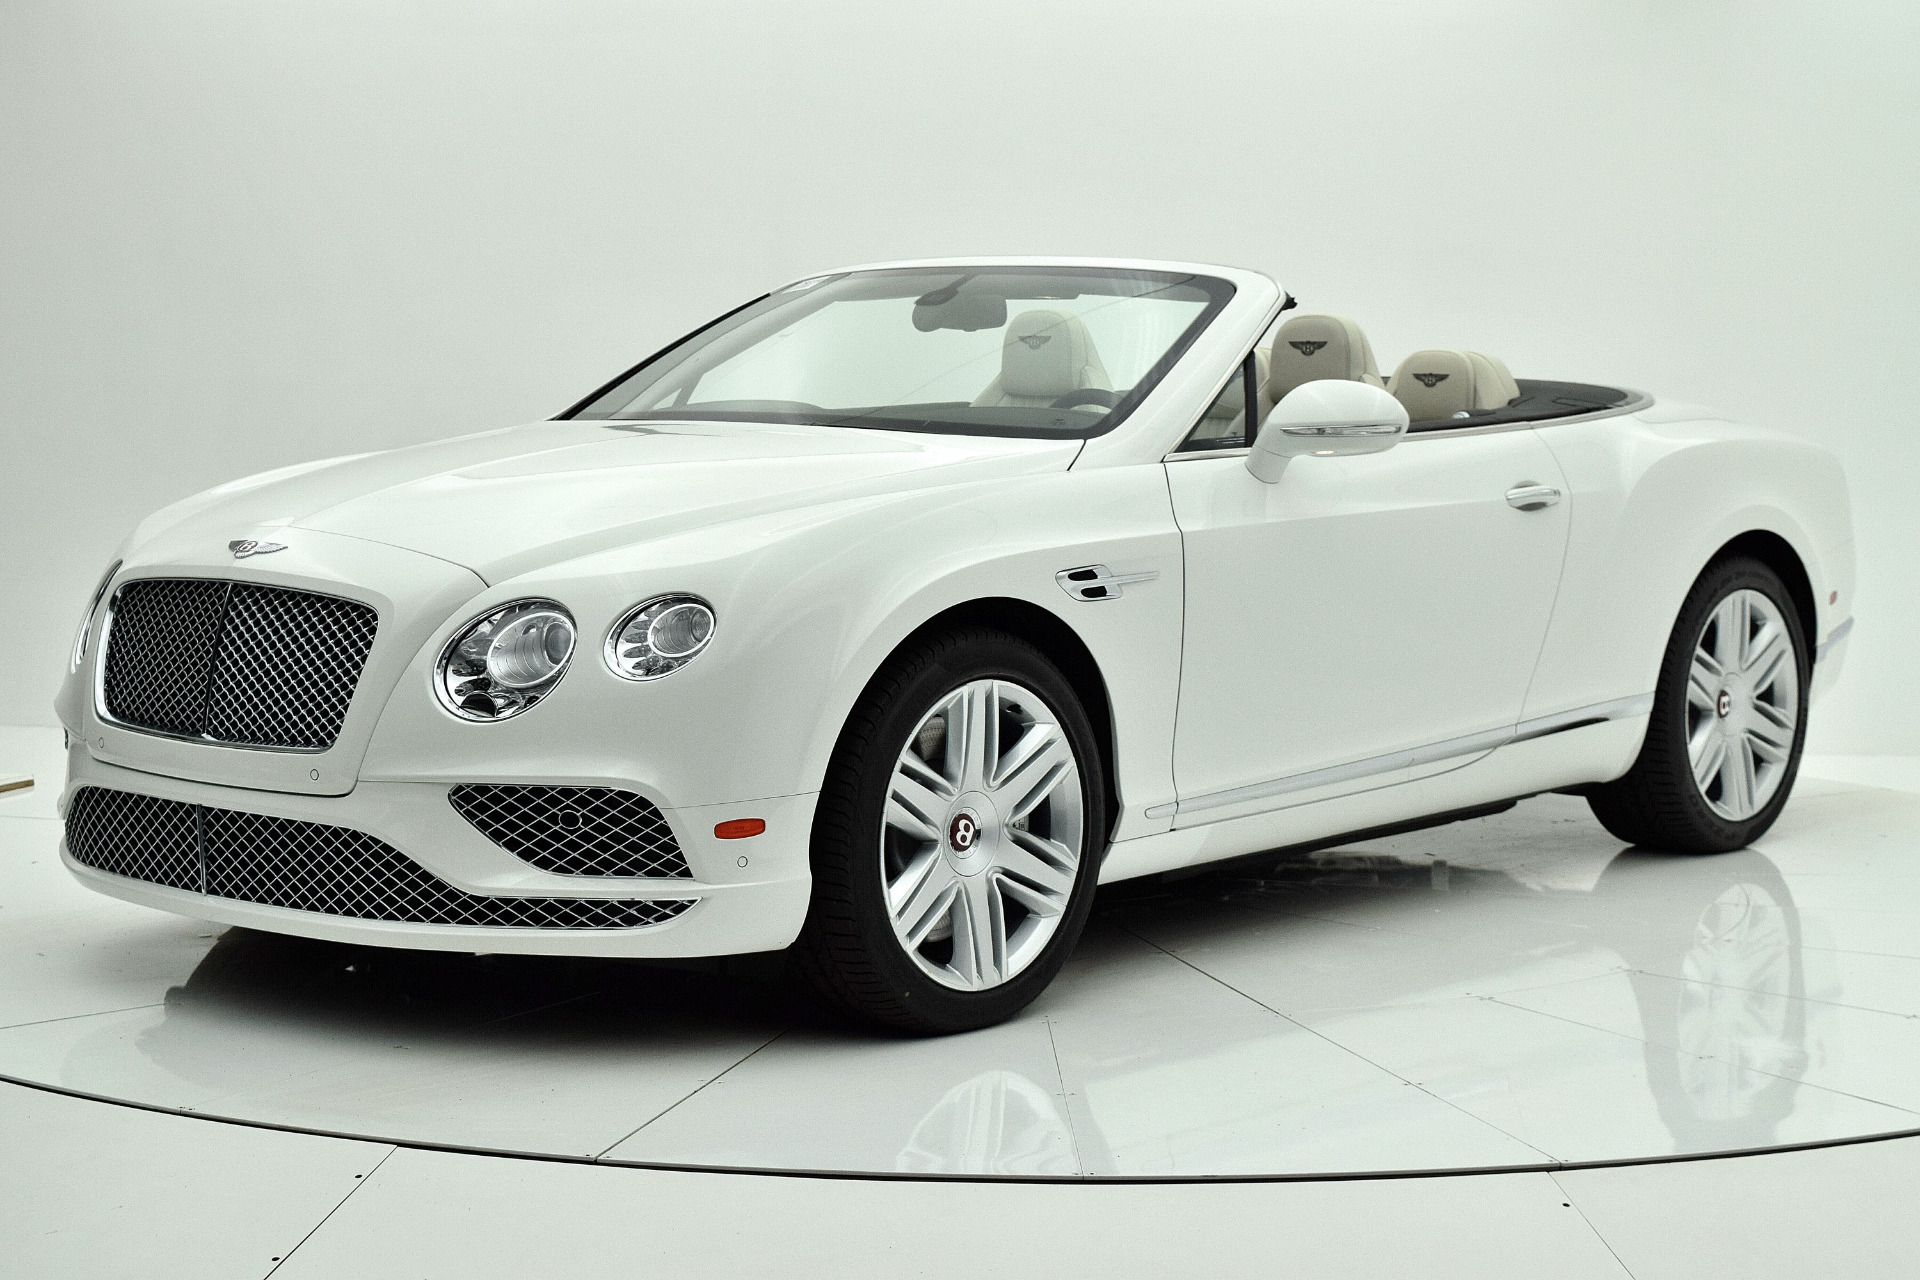 Used 2017 Bentley Continental GT V8 Convertible for sale Sold at F.C. Kerbeck Aston Martin in Palmyra NJ 08065 2